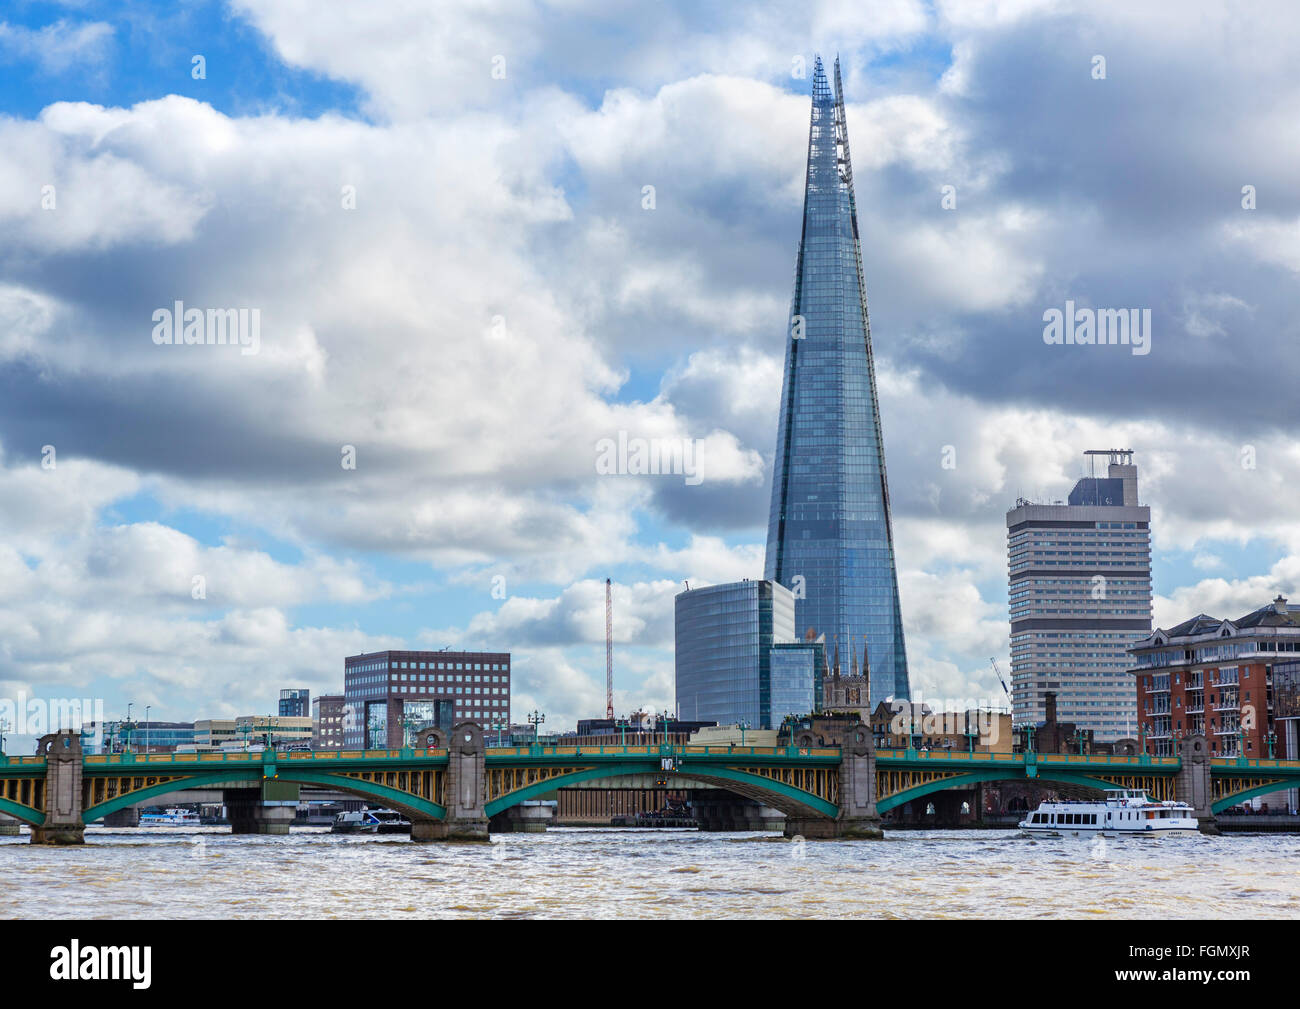 View over River Thames to Southwark Bridge with The Shard behind, Southwark, London, England, UK - Stock Image